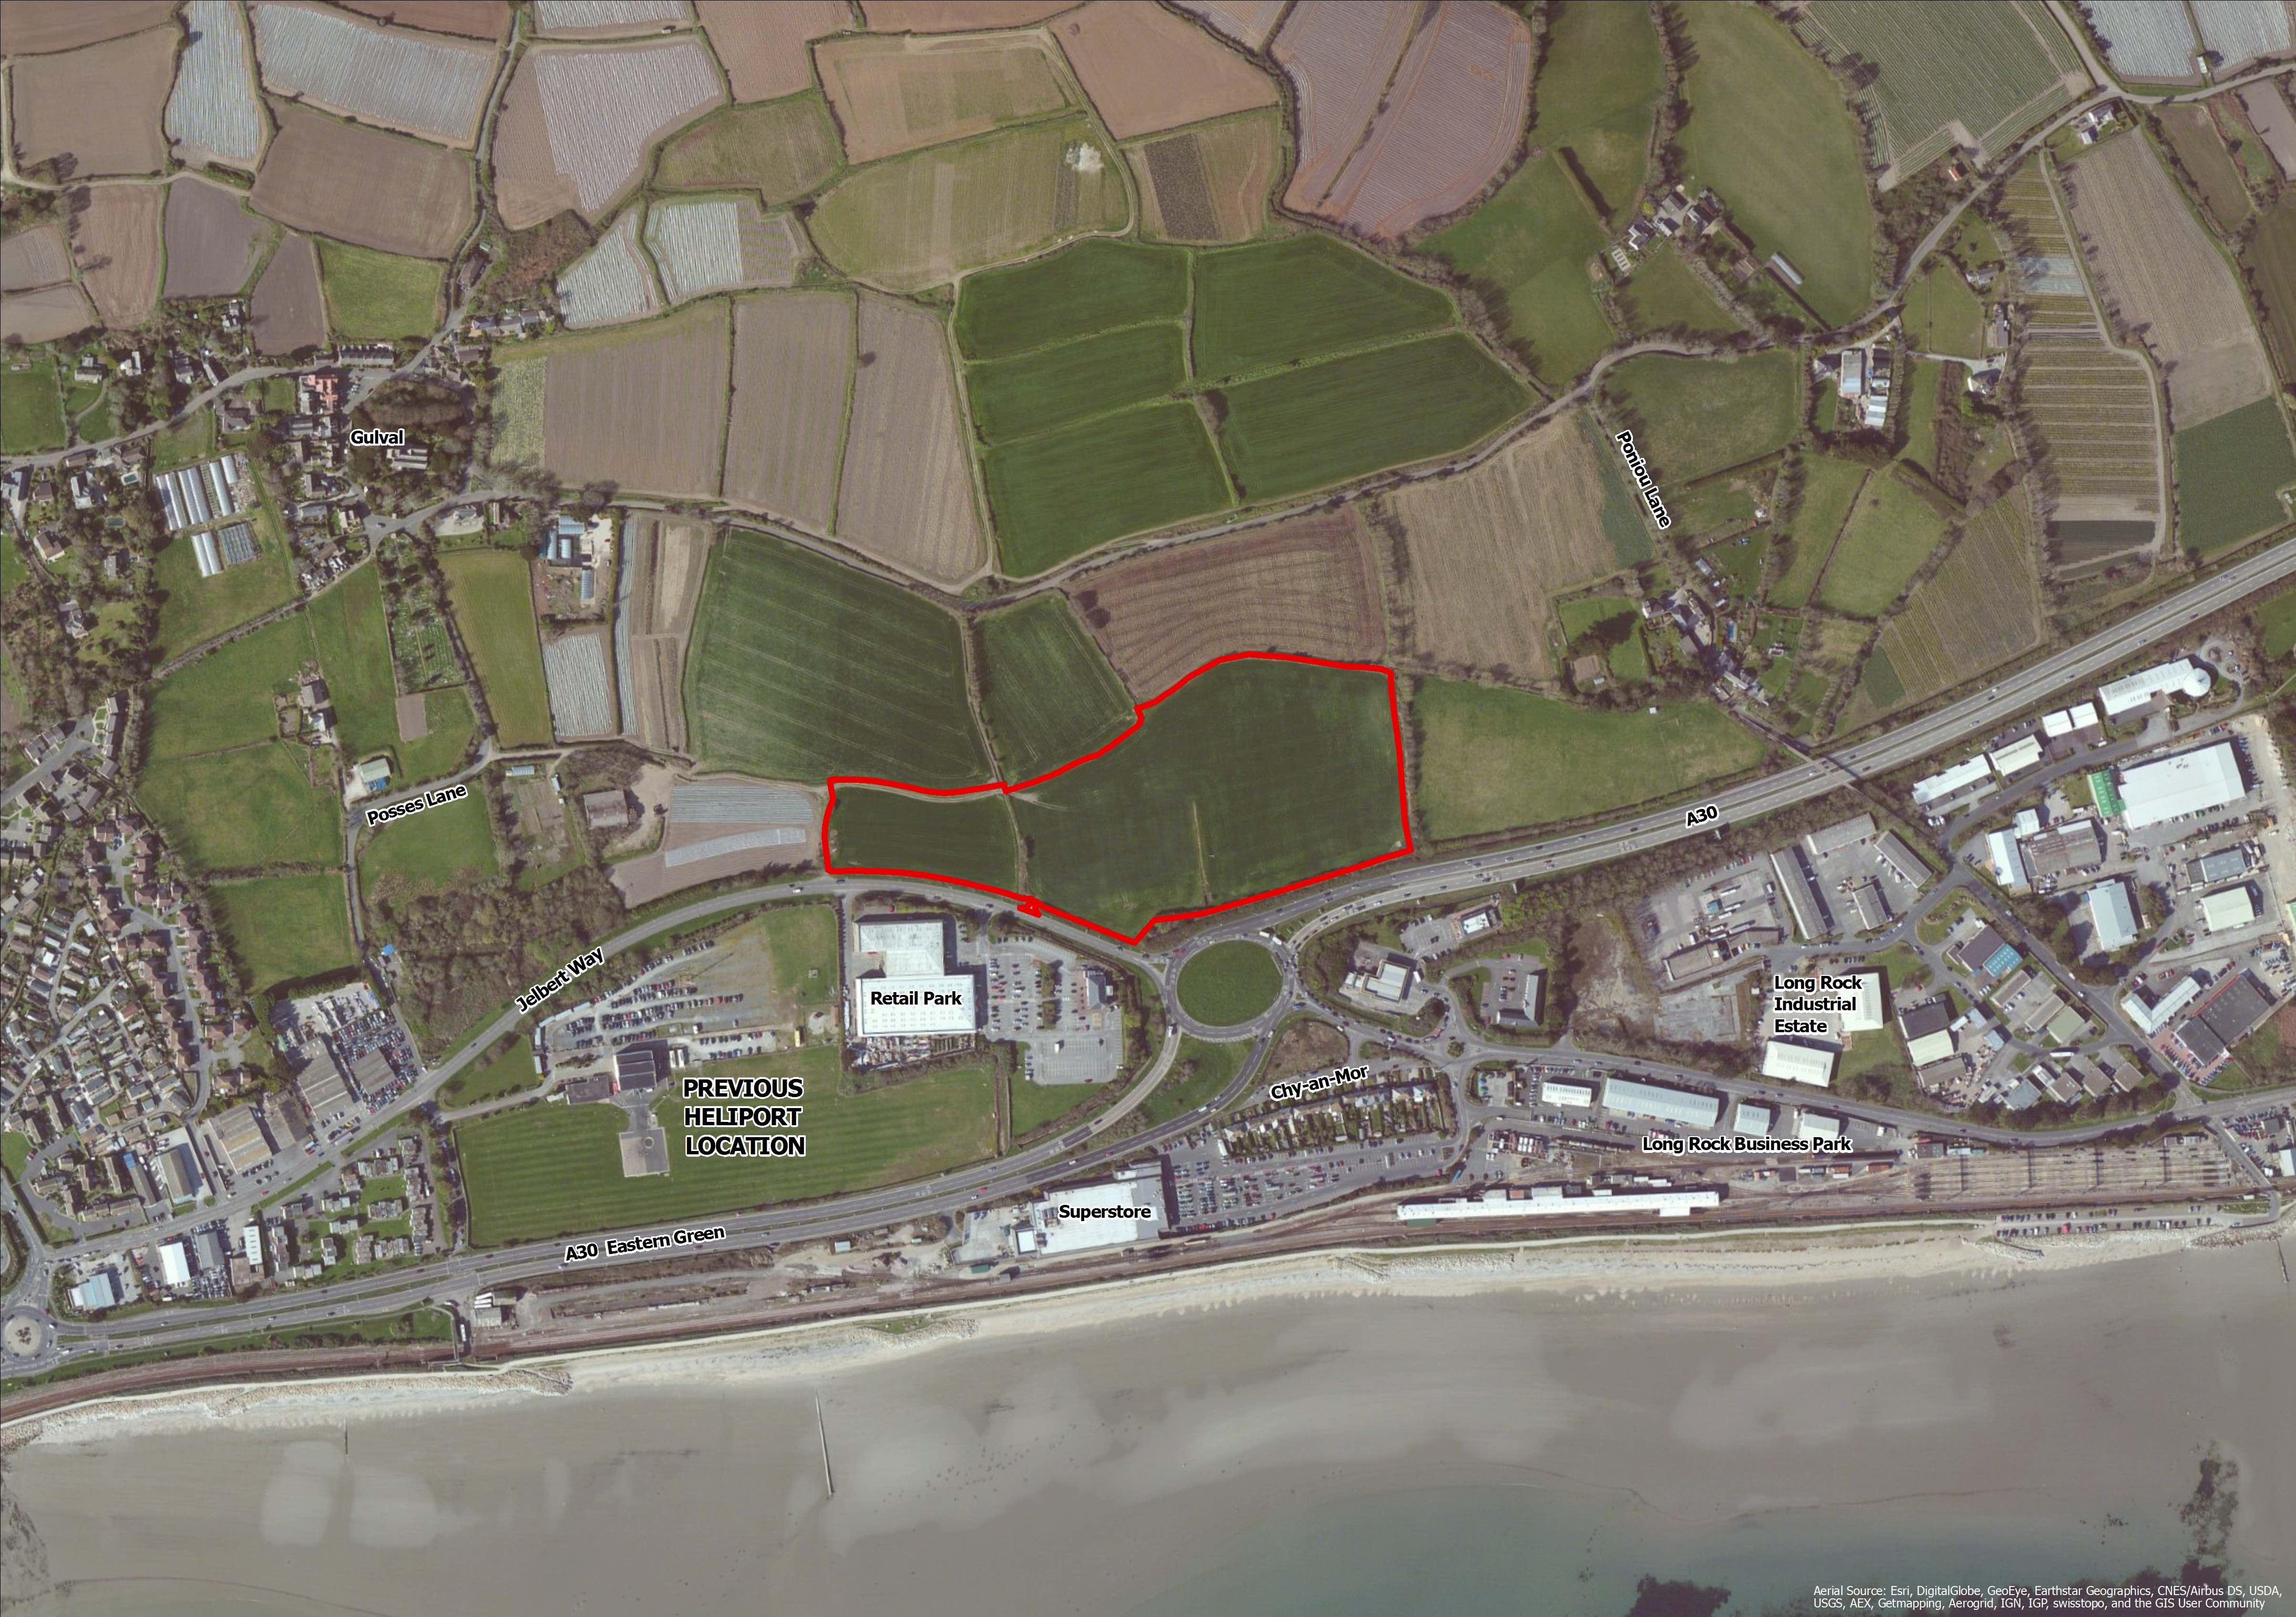 Penzance Heliport proposed site